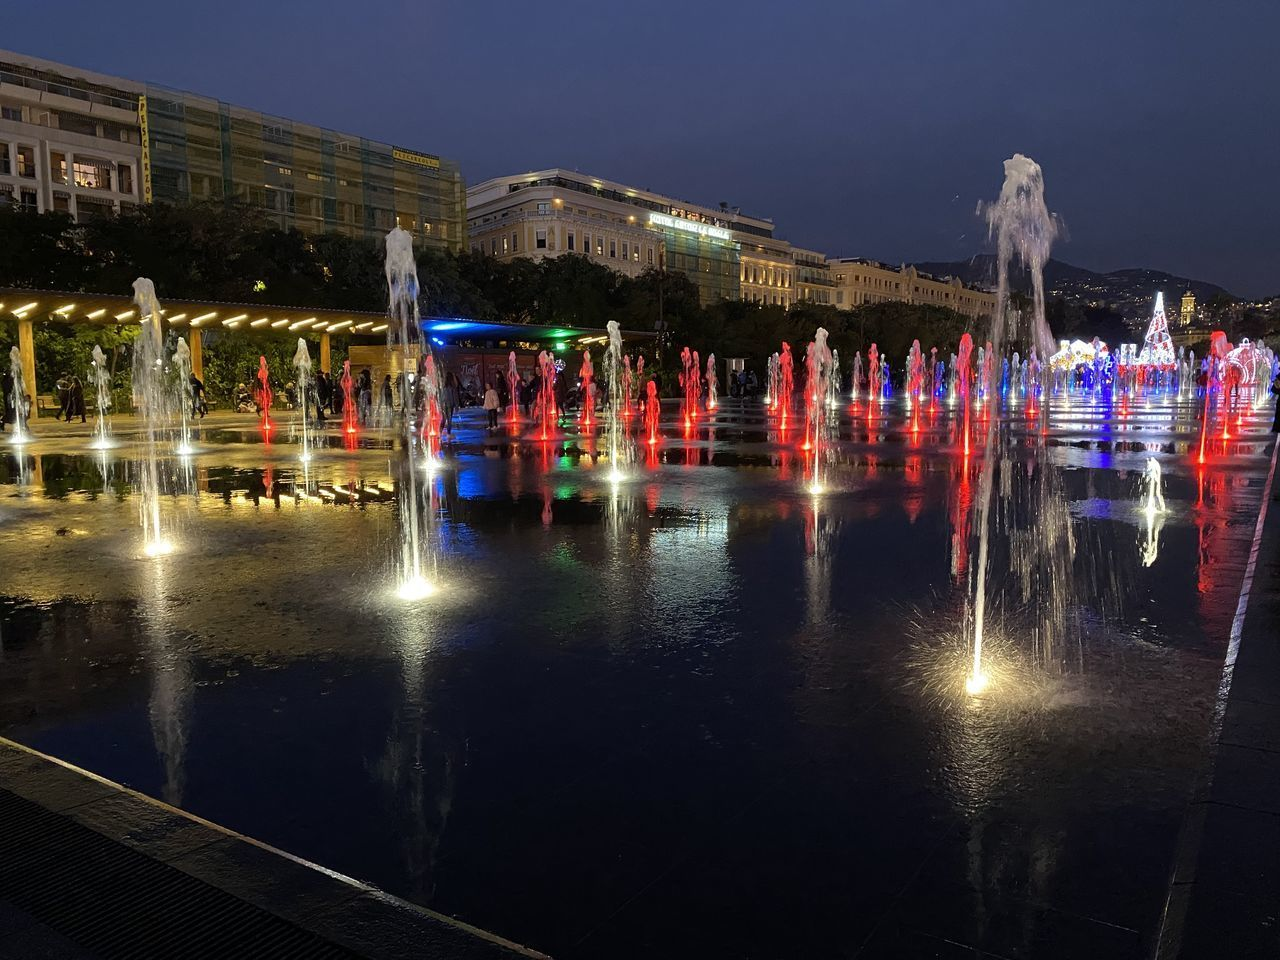 illuminated, reflection, water, night, architecture, built structure, building exterior, city, nature, group of people, sky, transportation, motion, waterfront, building, lake, large group of people, outdoors, travel destinations, light